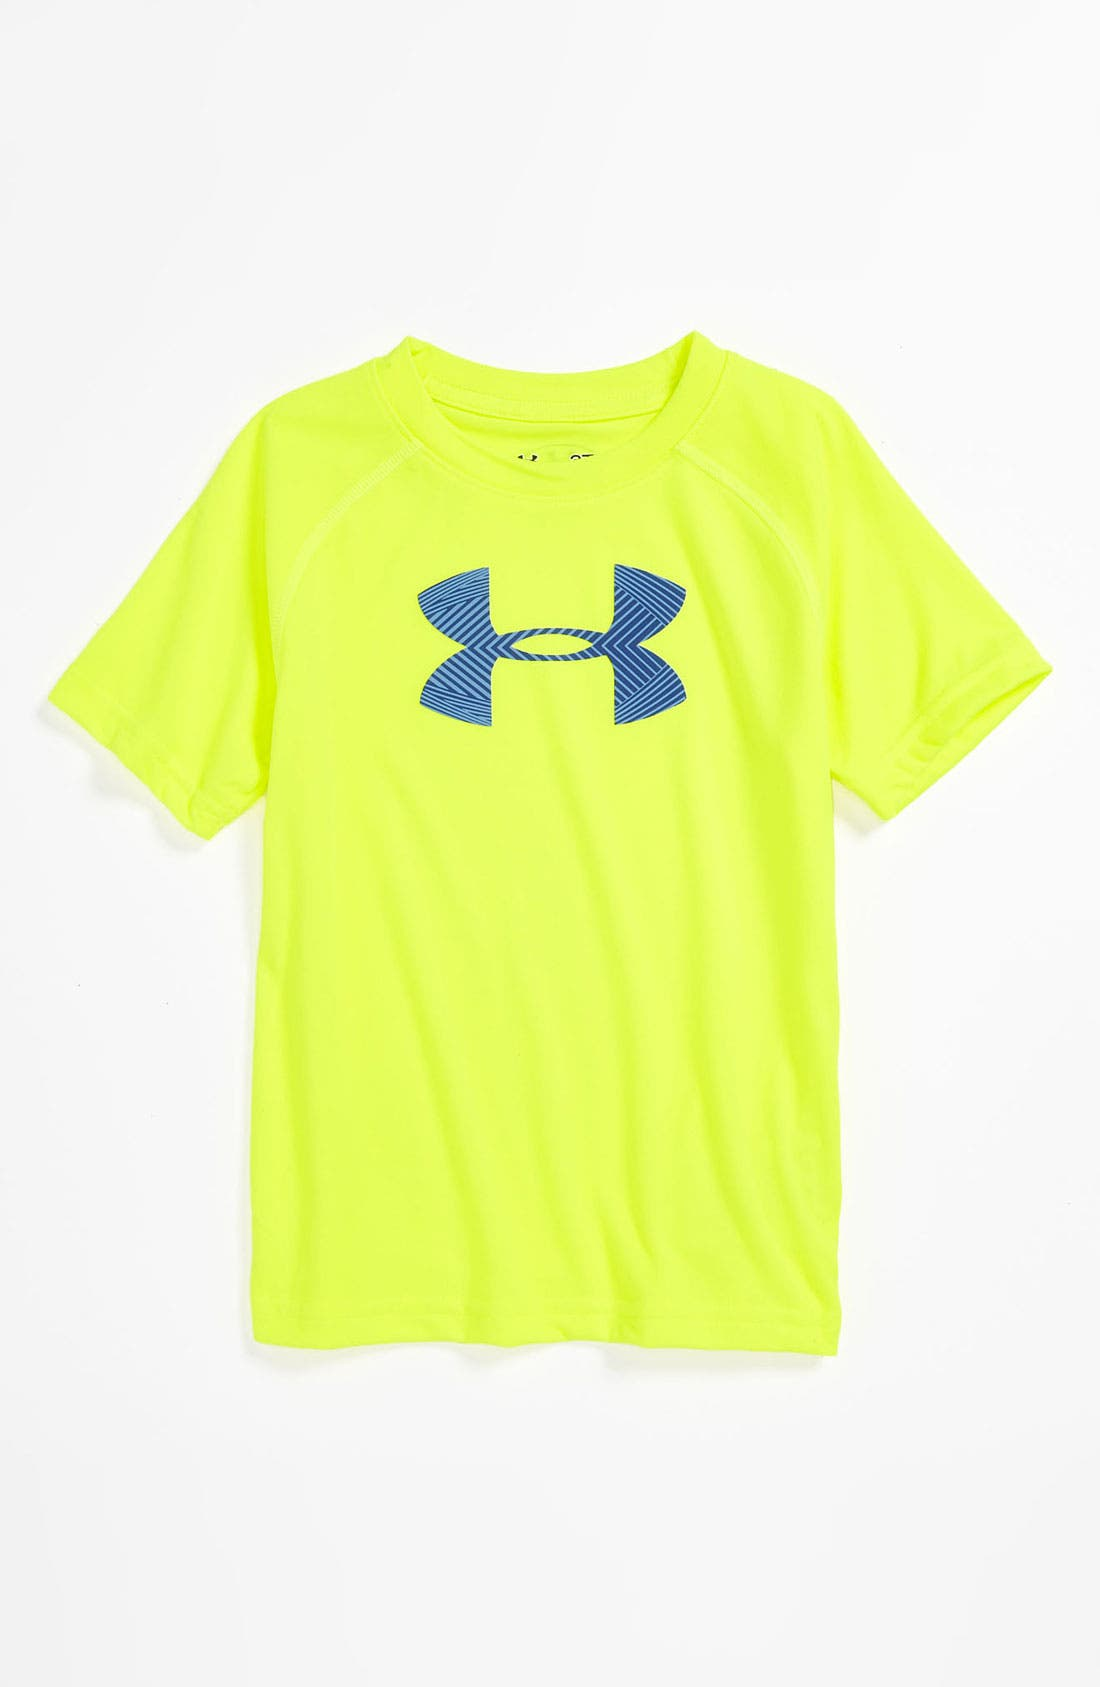 Alternate Image 1 Selected - Under Armour T-Shirt (Toddler)